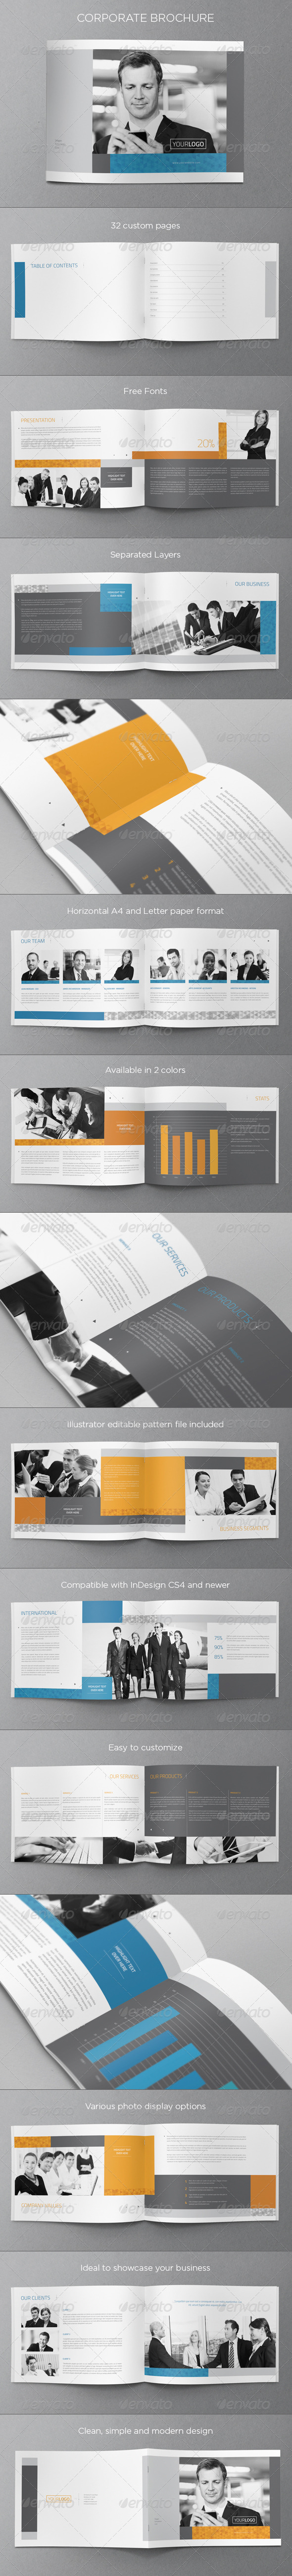 GraphicRiver Corporate Business Brochure 5156413